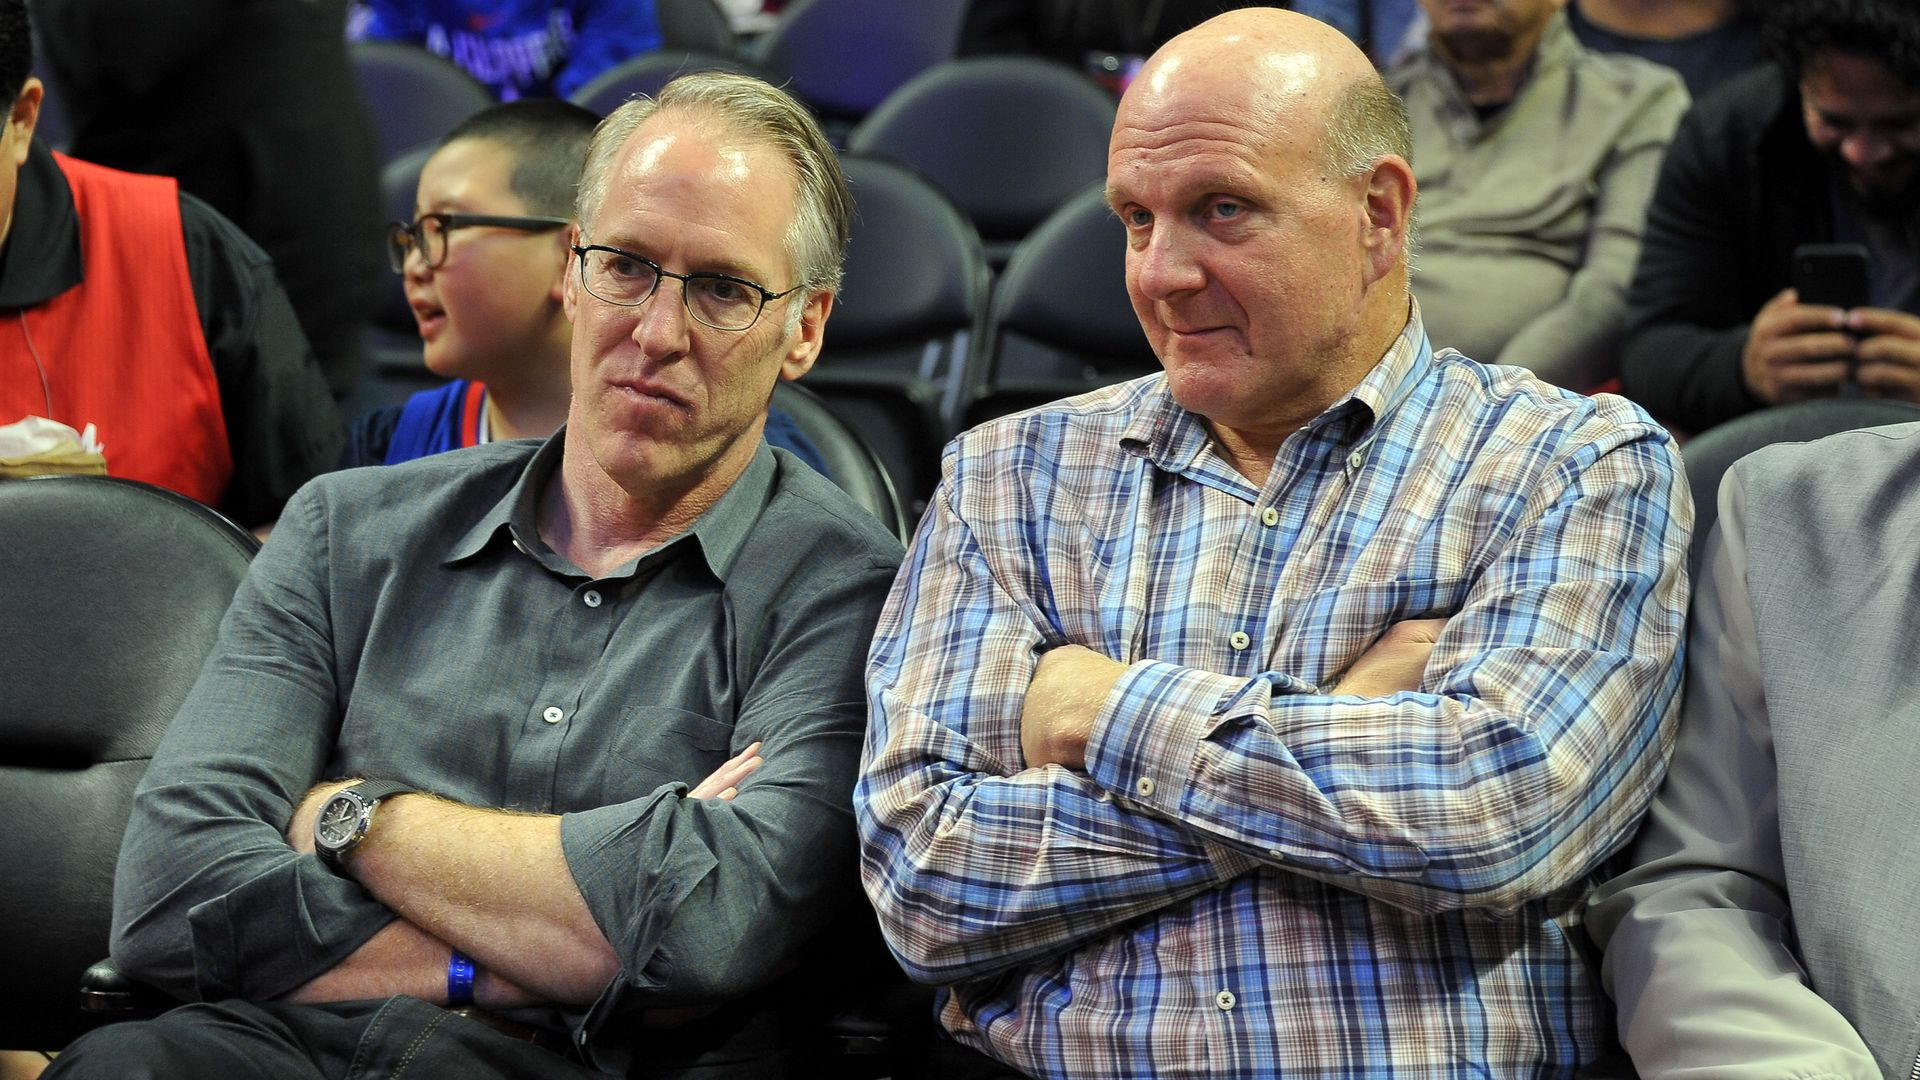 Steve Ballmer at a basketball game.